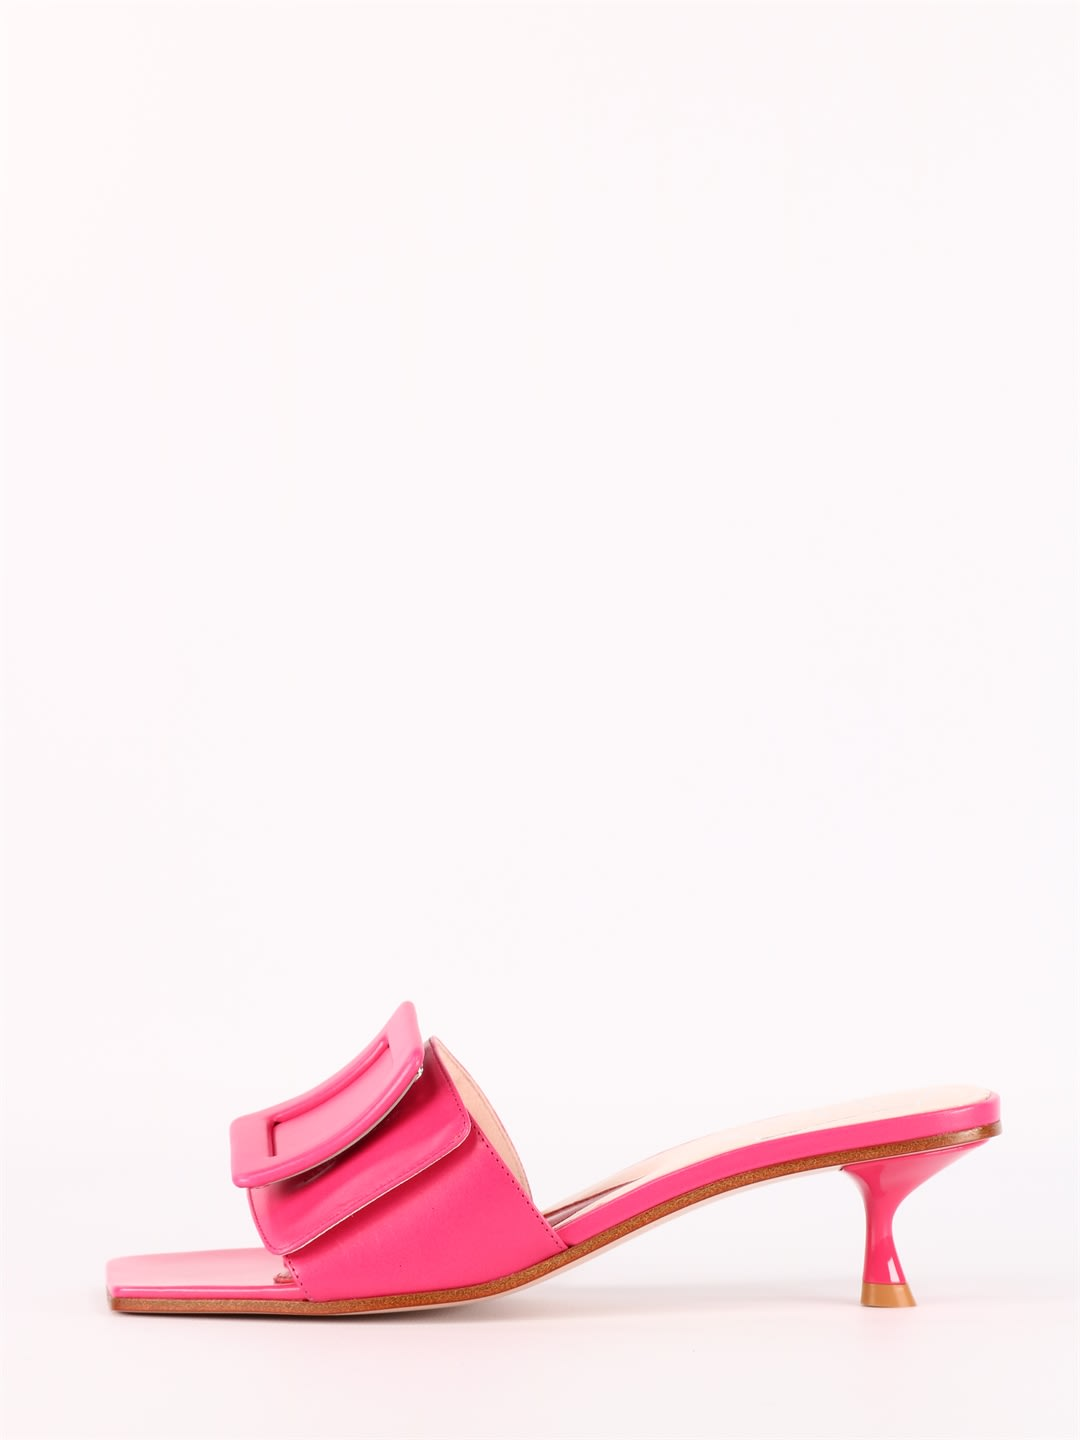 Roger Vivier Leathers PINK COVERED BUCKLE MULES